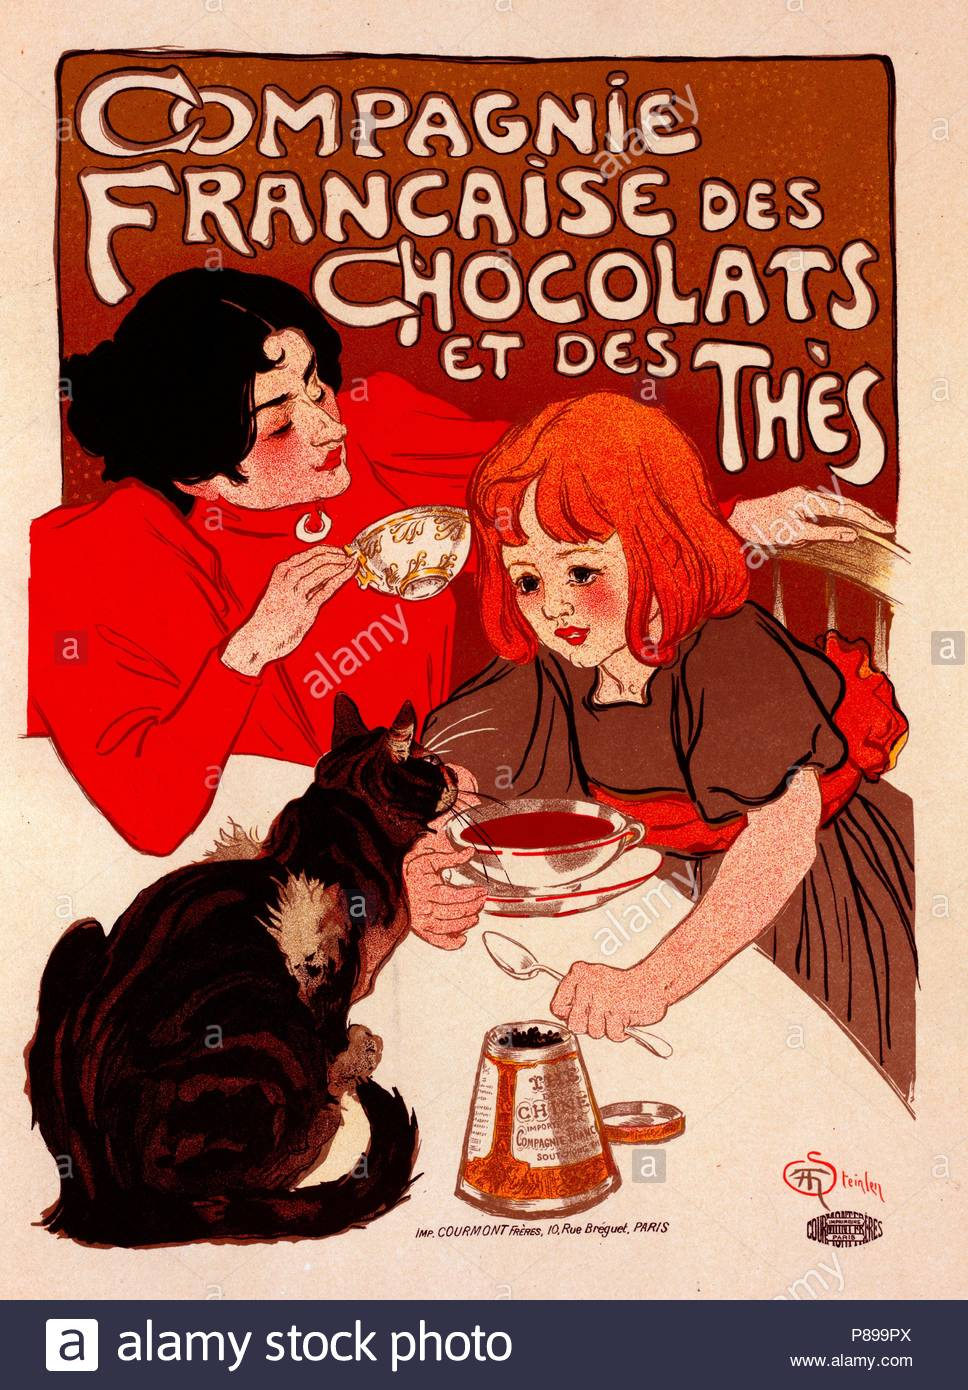 Poster for Chocolat de la Compagnie Française. Théophile Alexandre Steinlen, frequently referred to as just Steinlen 1859 – 1923, a Swiss-born French Art Nouveau painter and printmaker. - Stock Image